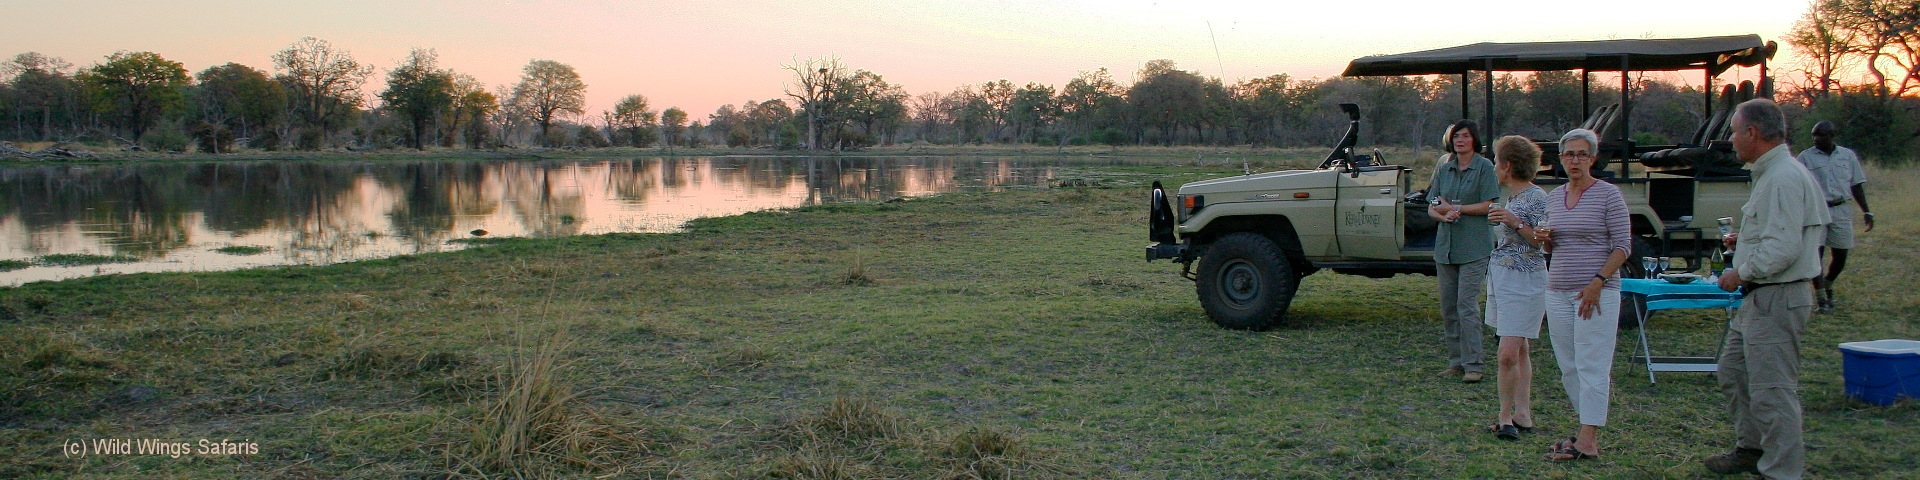 Botswana Safari Sundowners